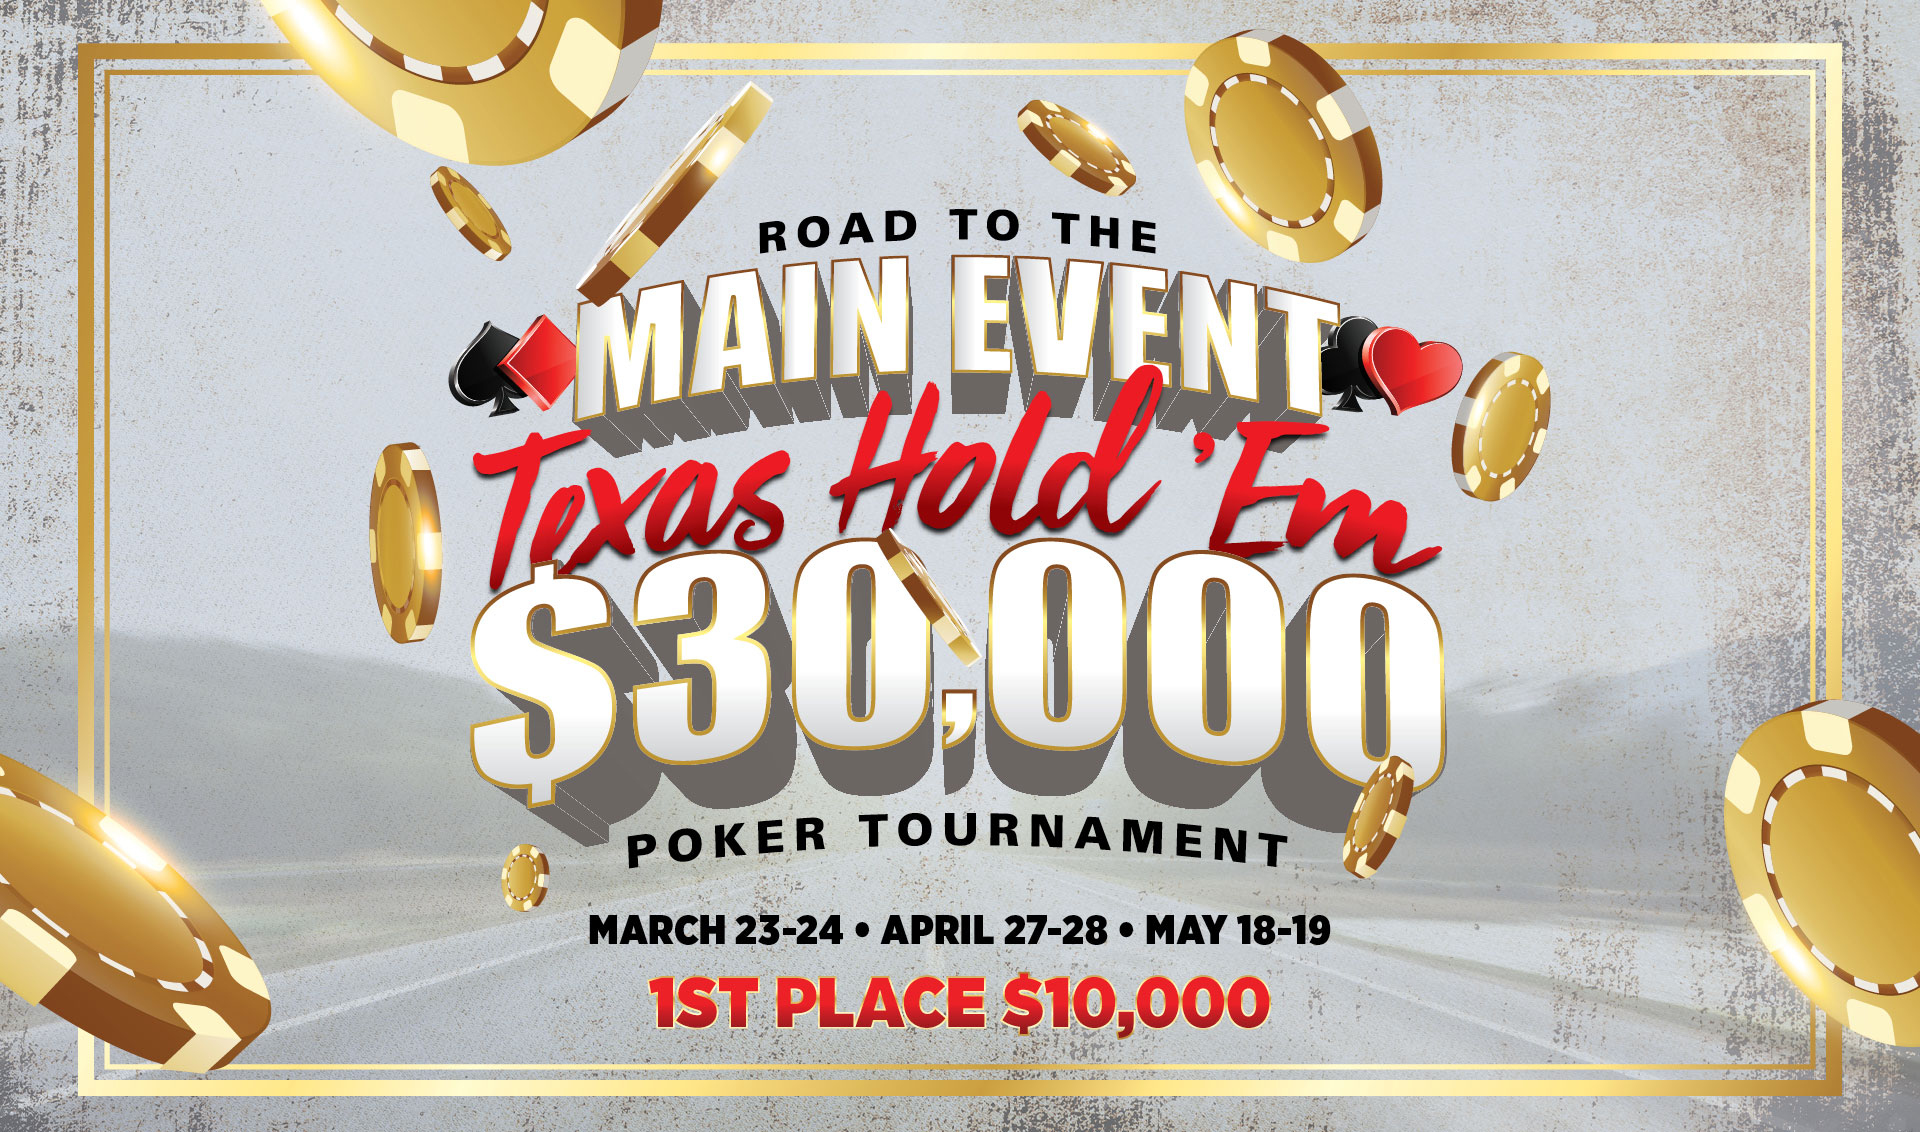 Road to the Main Event Poker Tournament